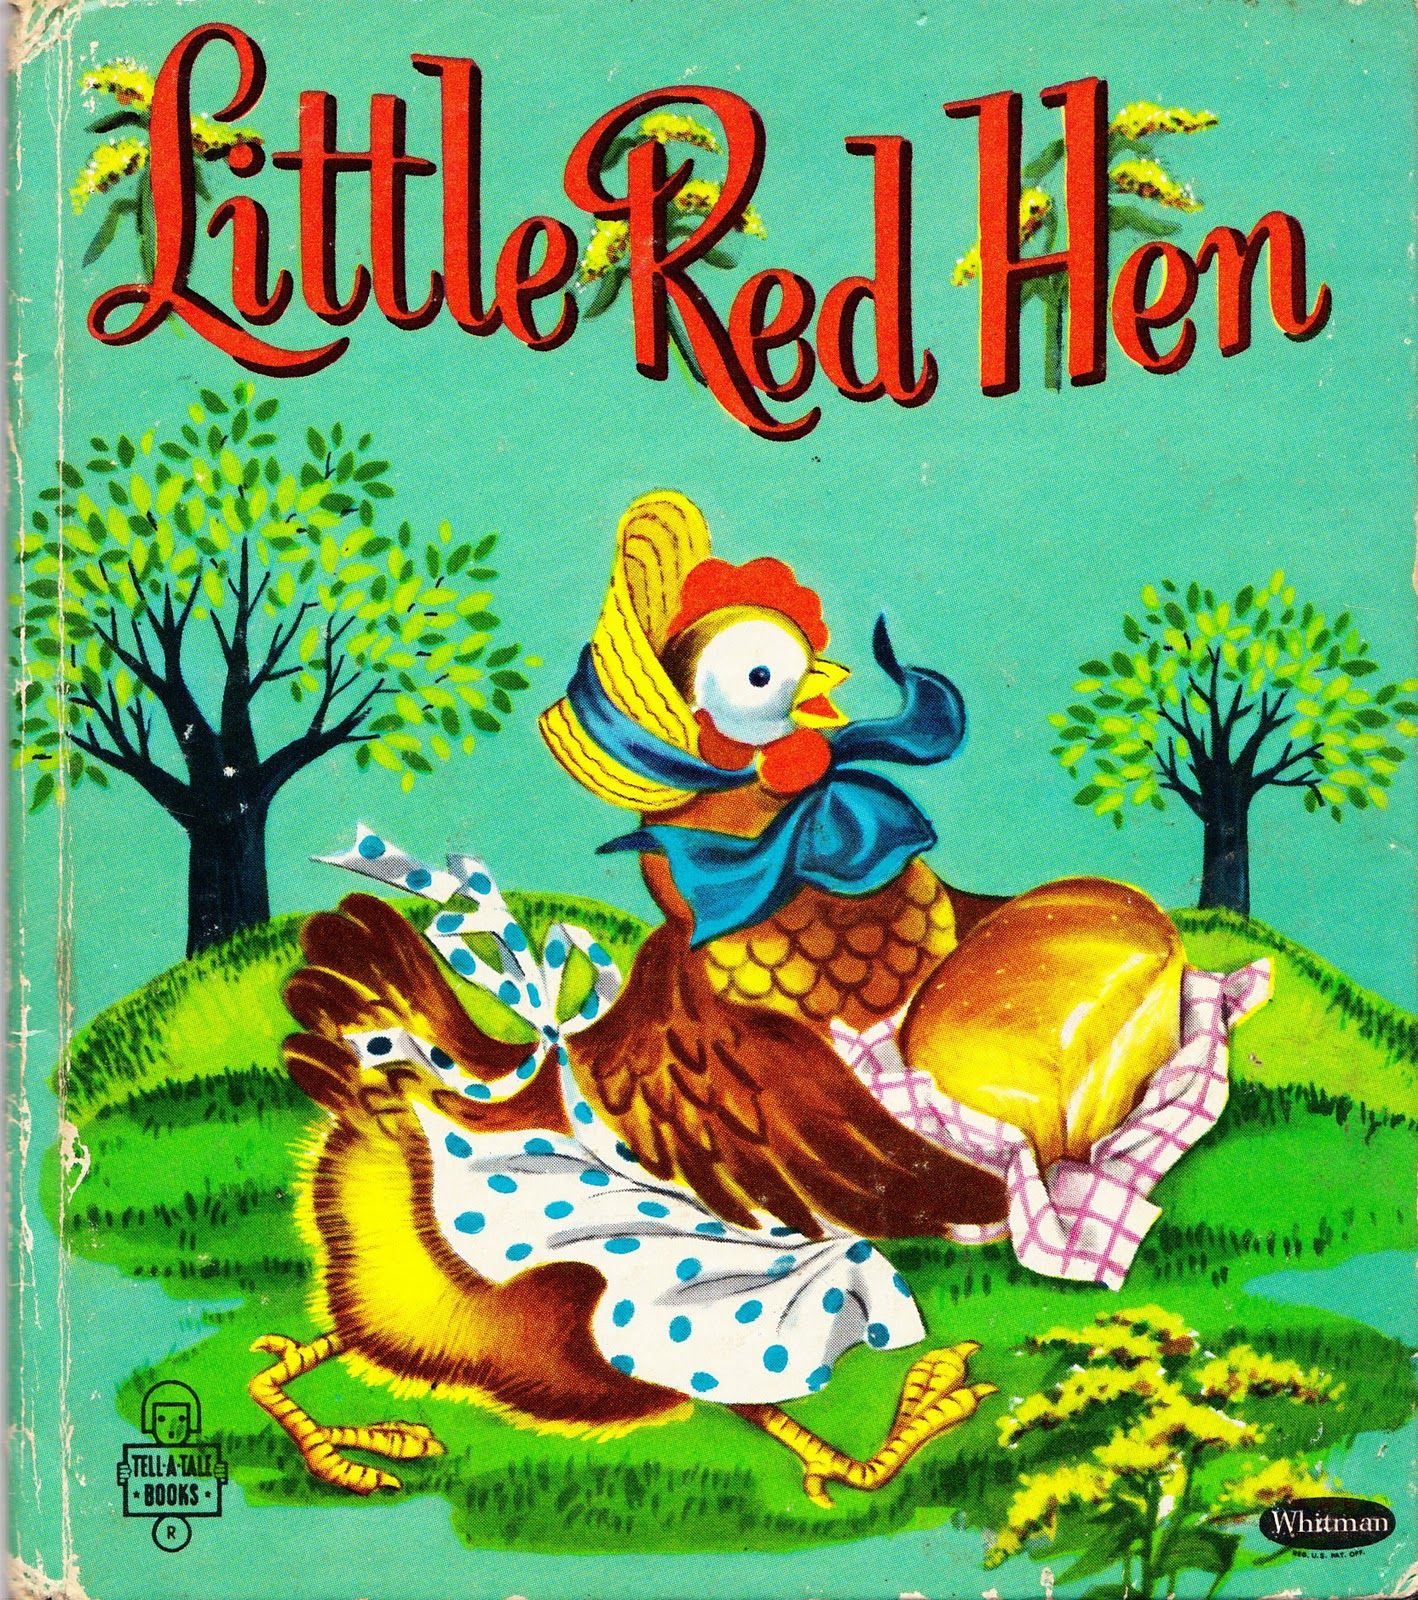 Related Pictures The Little Red Hen Sequencing Images